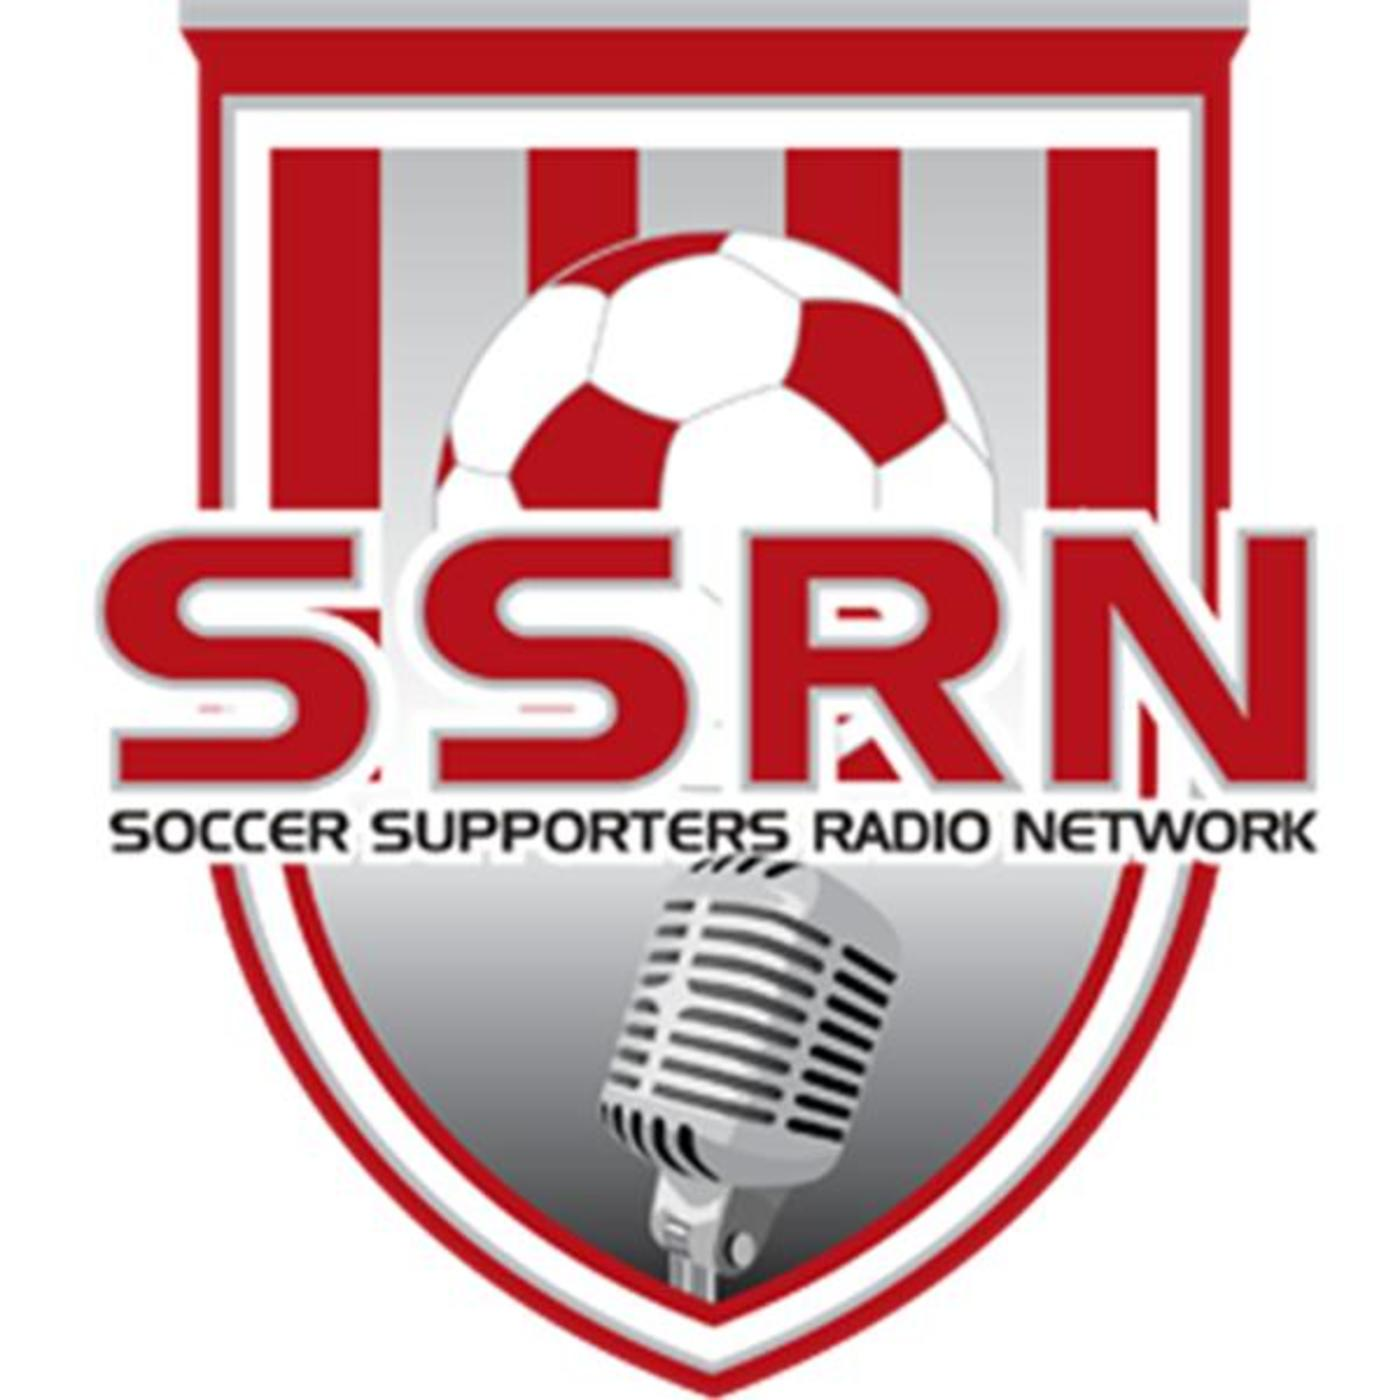 Soccer Supporters Radio Network